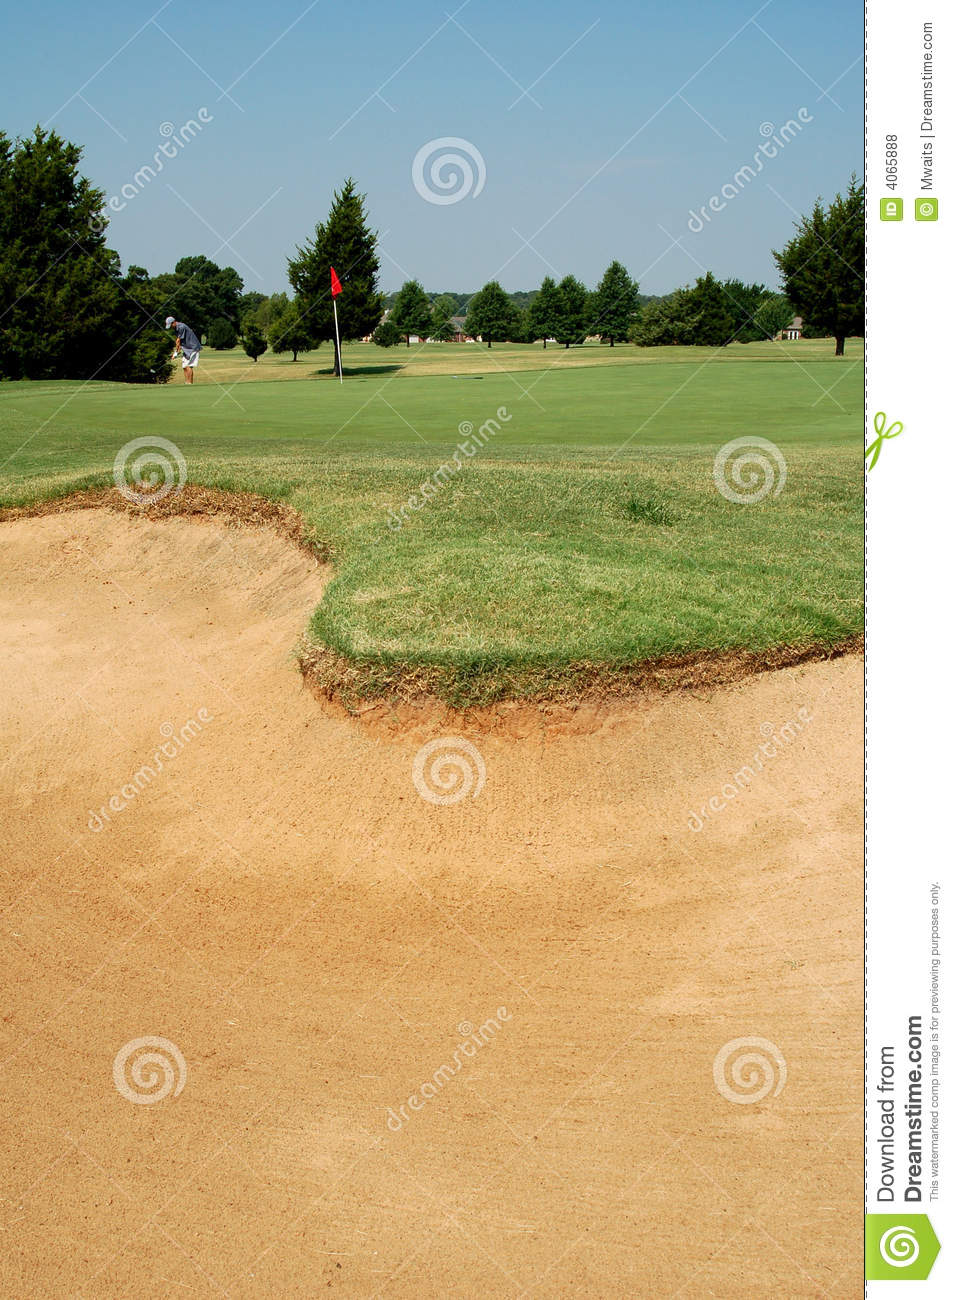 Sand trap royalty free stock photos image 4065888 - Wand trap ...